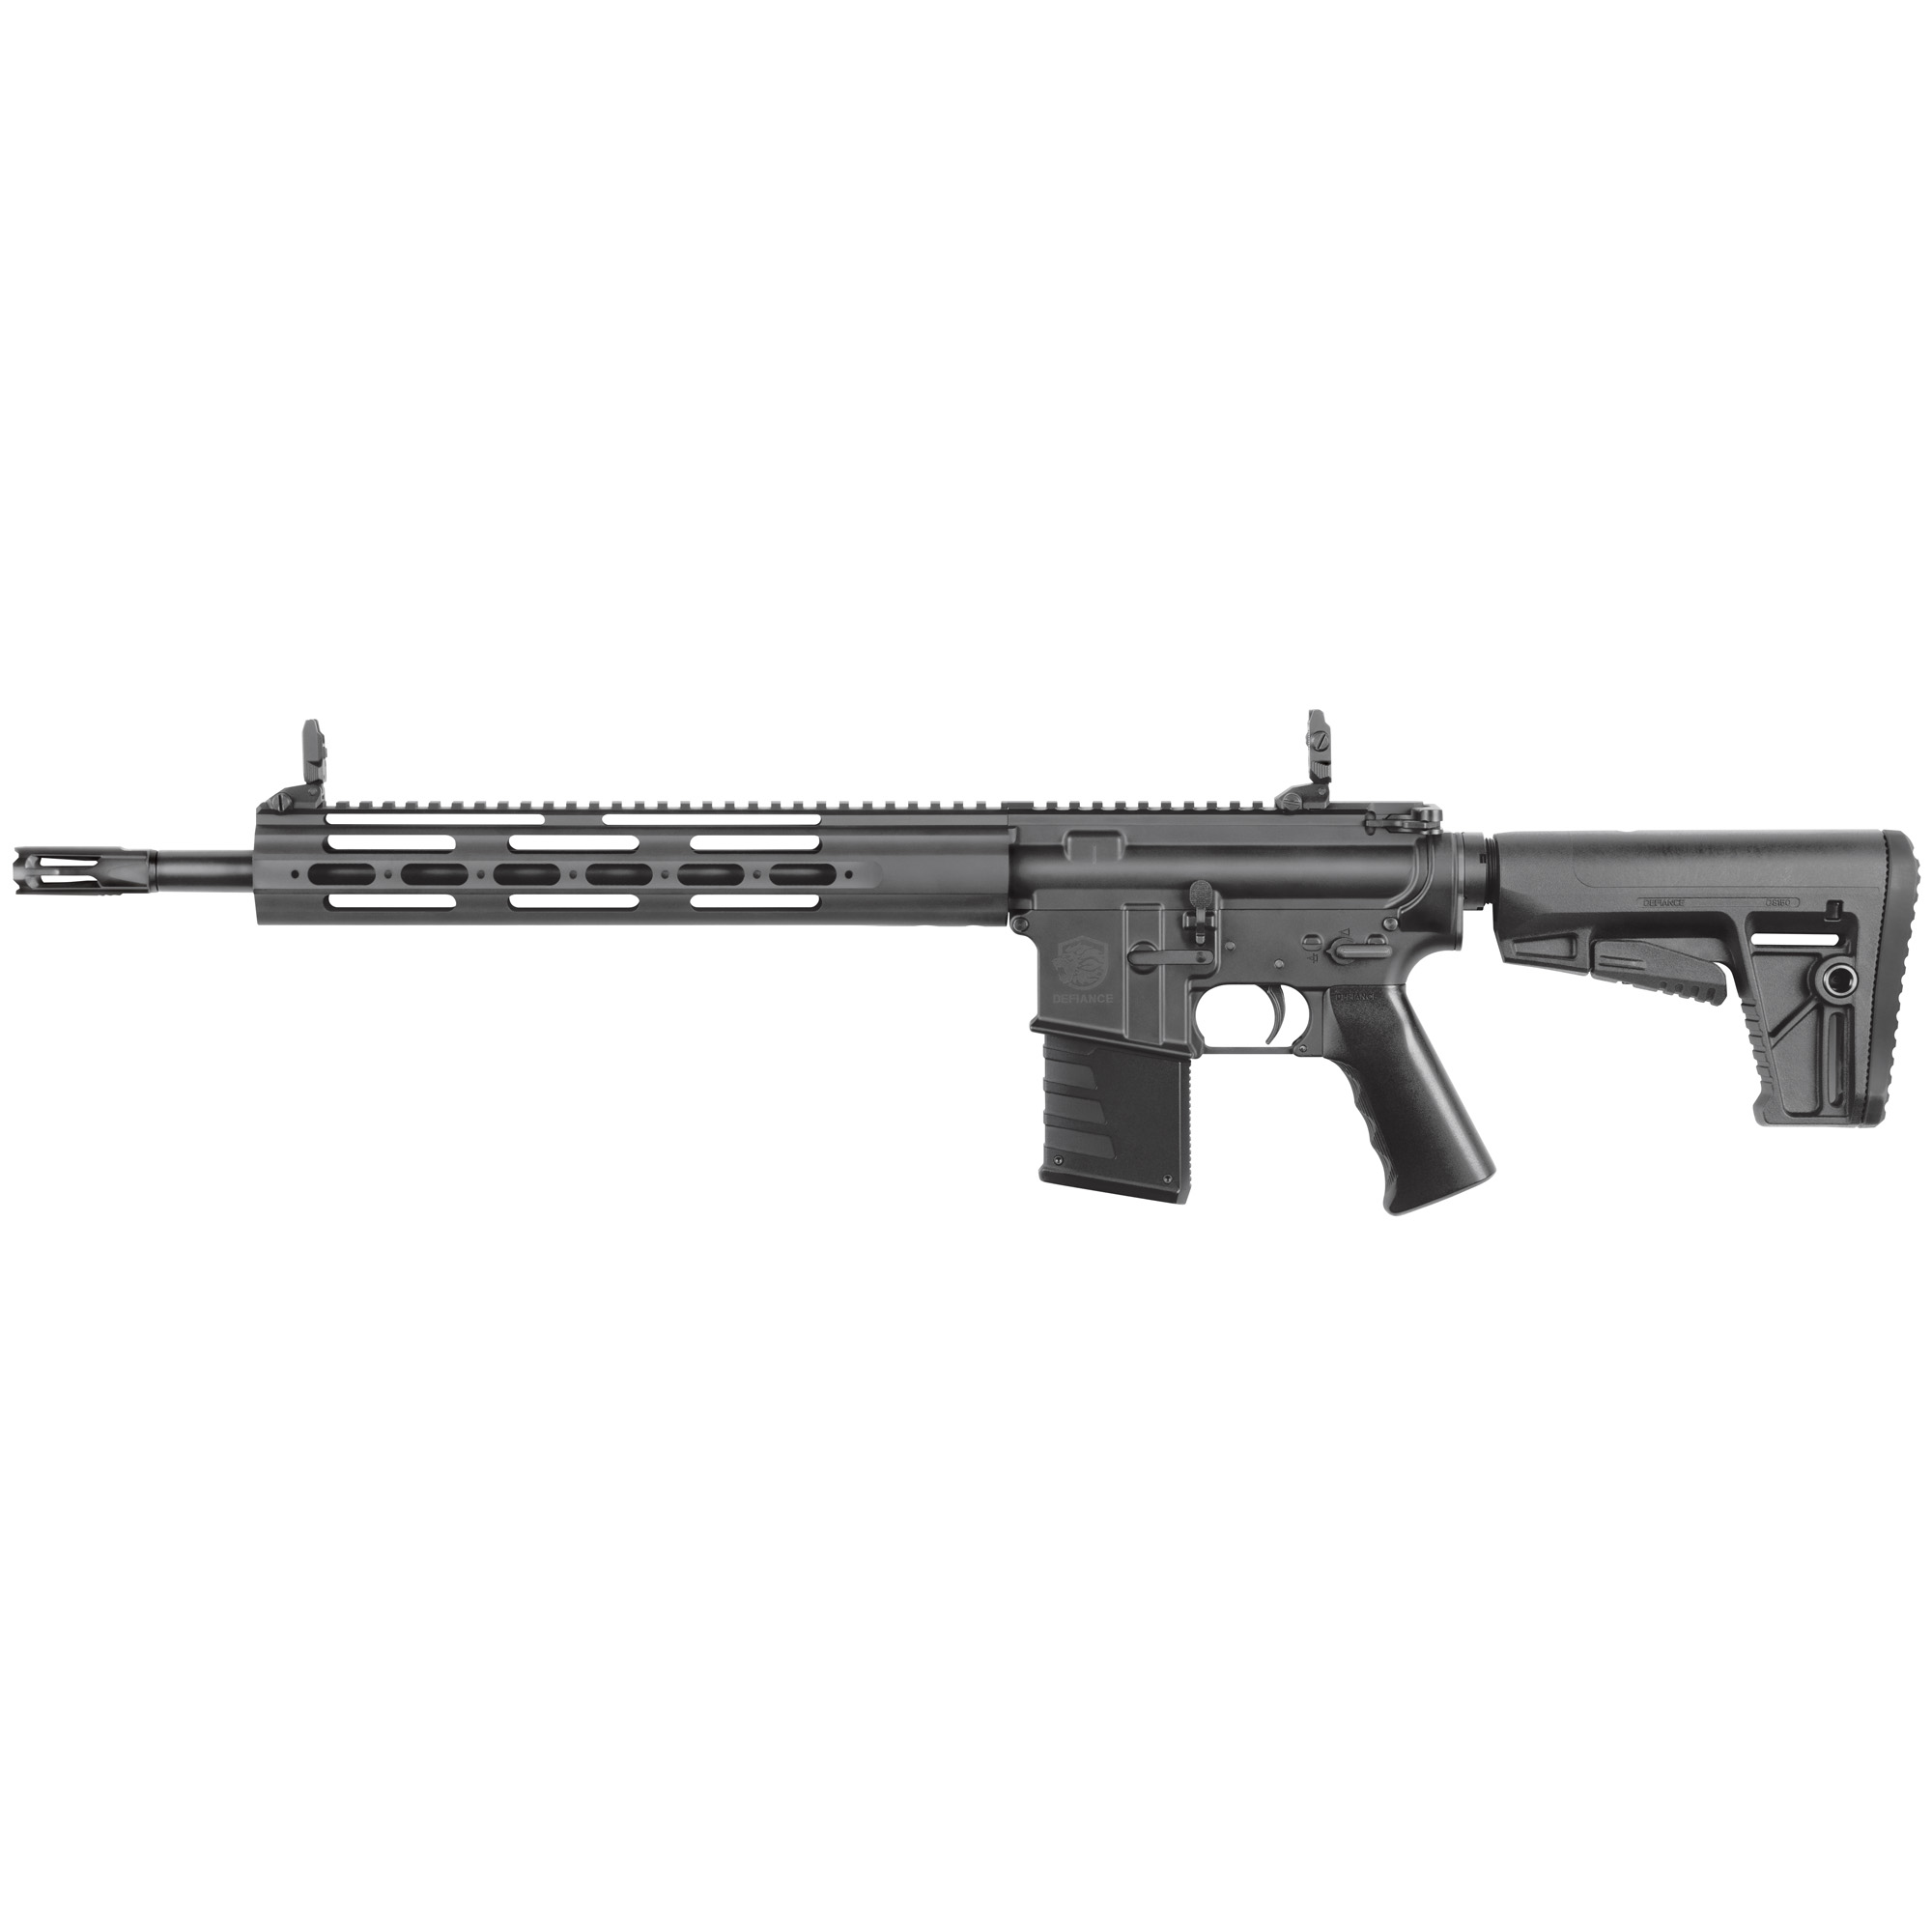 """Designed as the ultimate AR training platform"""" the DMK22 features a true last round bolt lock feature. The patented barrel adapter allows for the installation of currently available aftermarket Ruger(R) 10/22 .22lr barrels."""